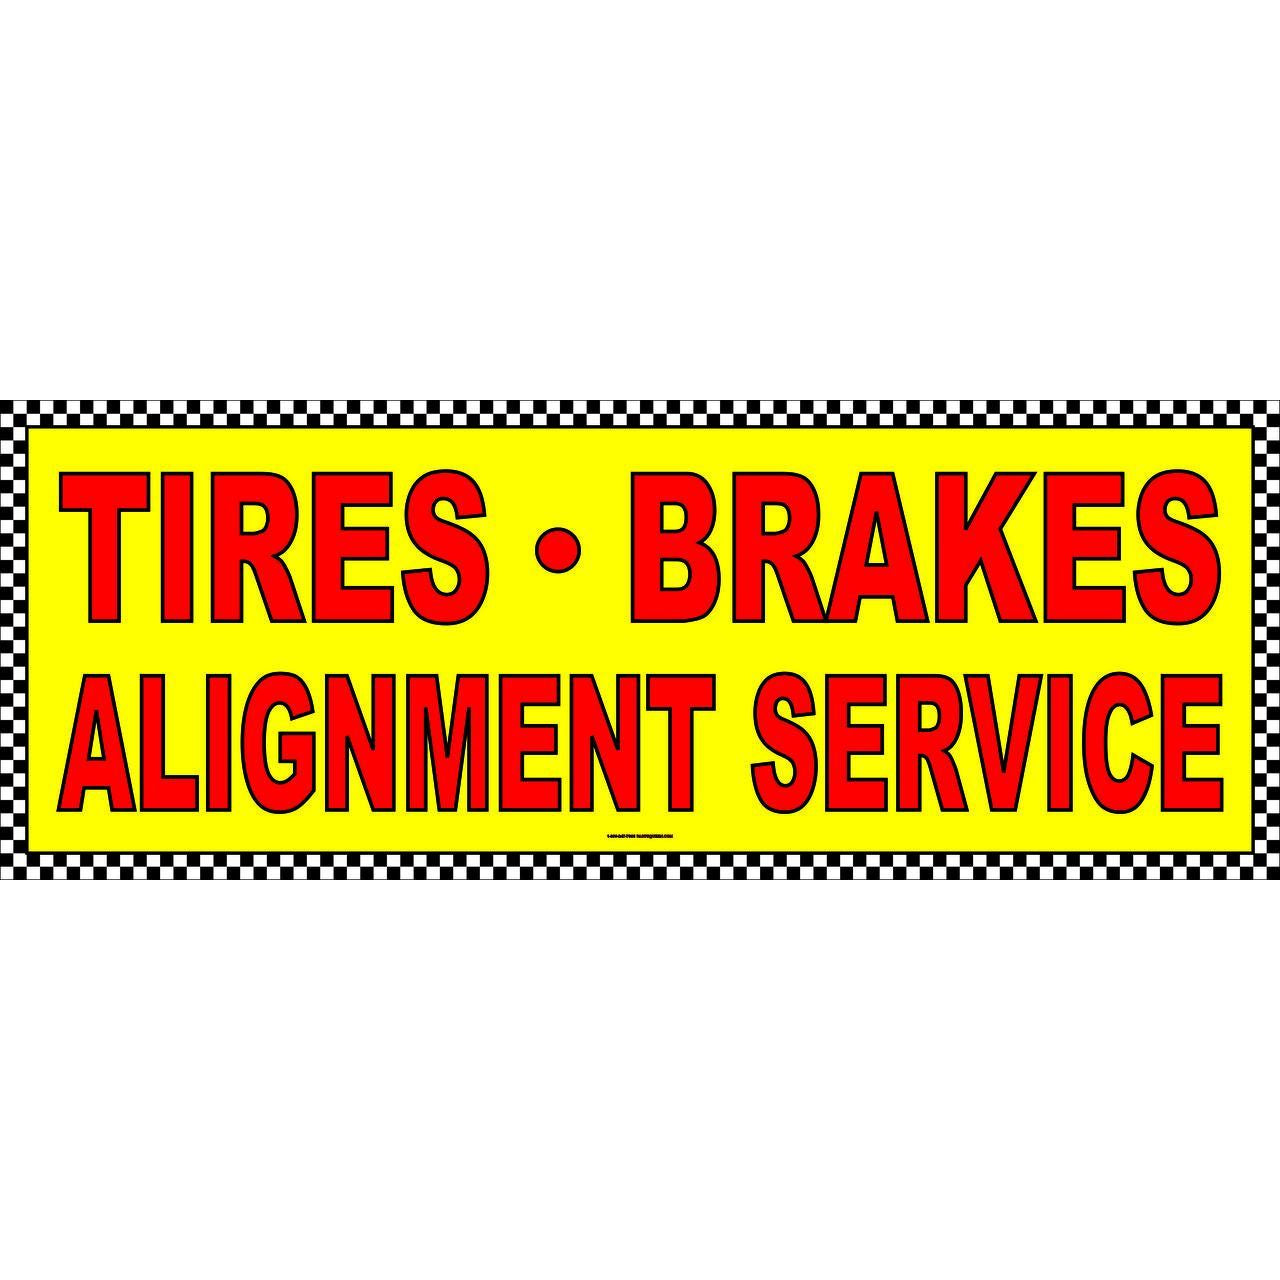 TIRES BRAKES ALIGNMENT AB702CHK